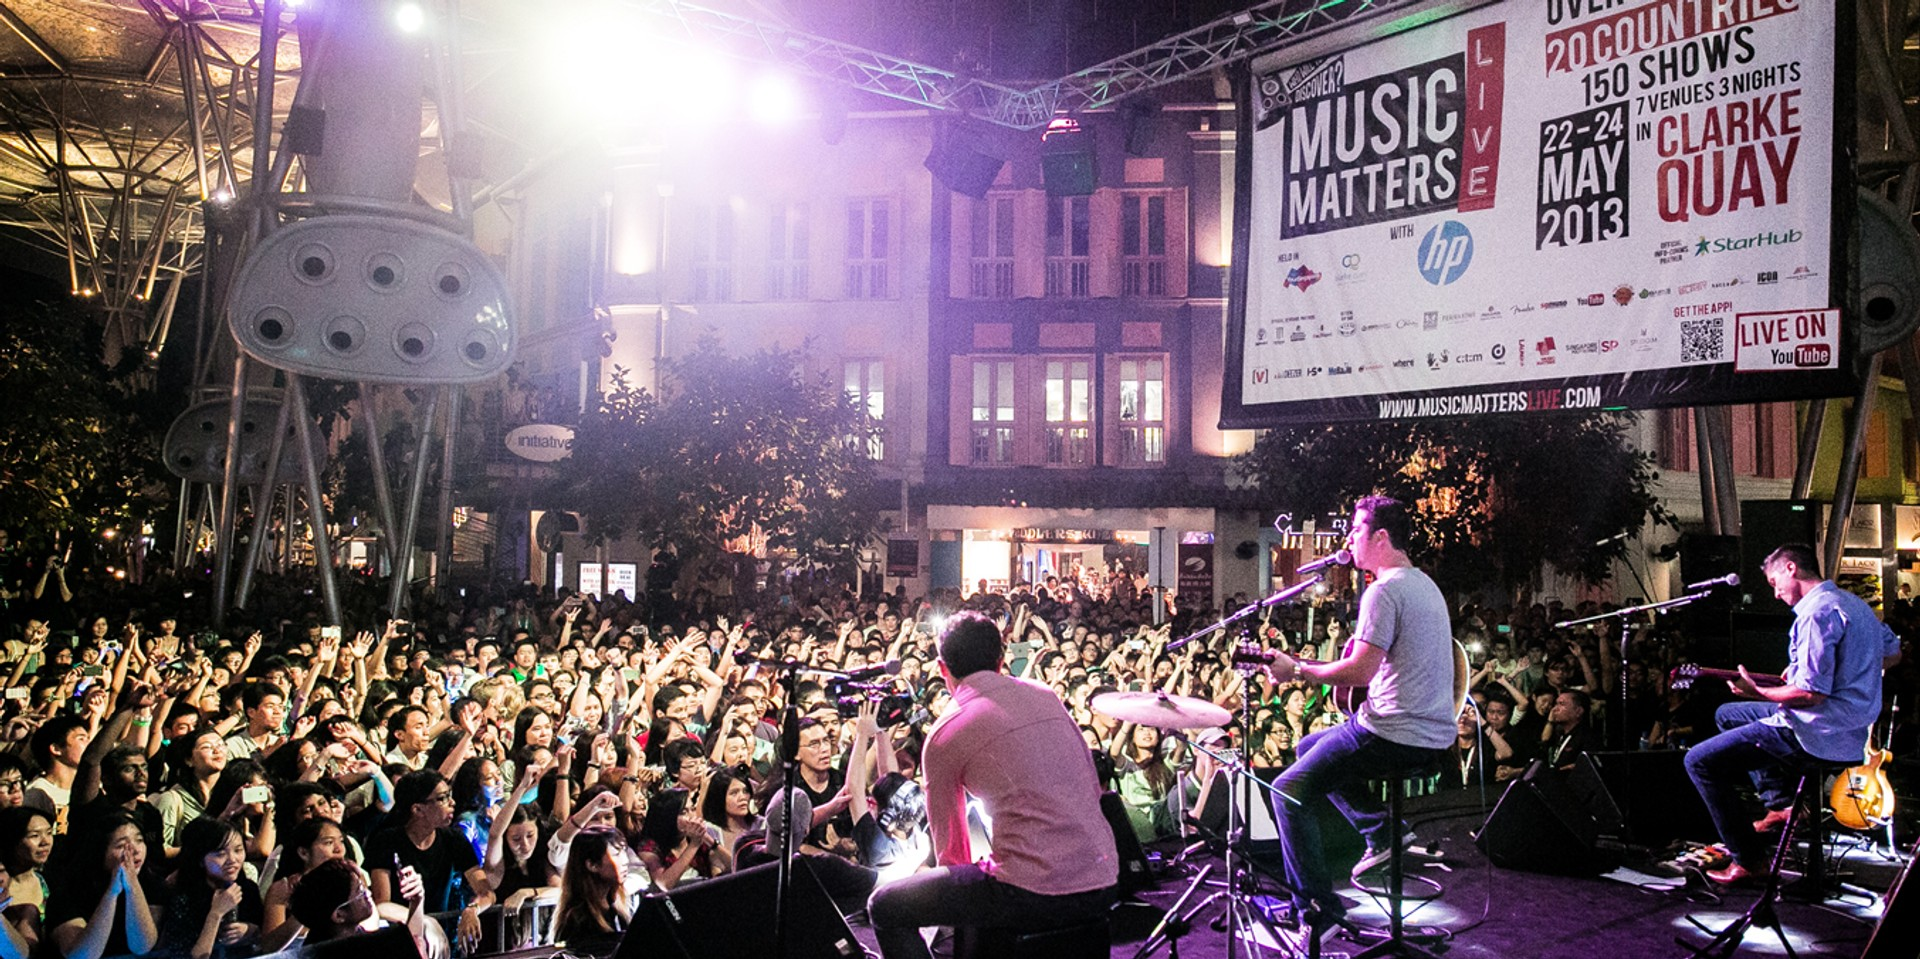 Music Matters Live is calling out for bands this year